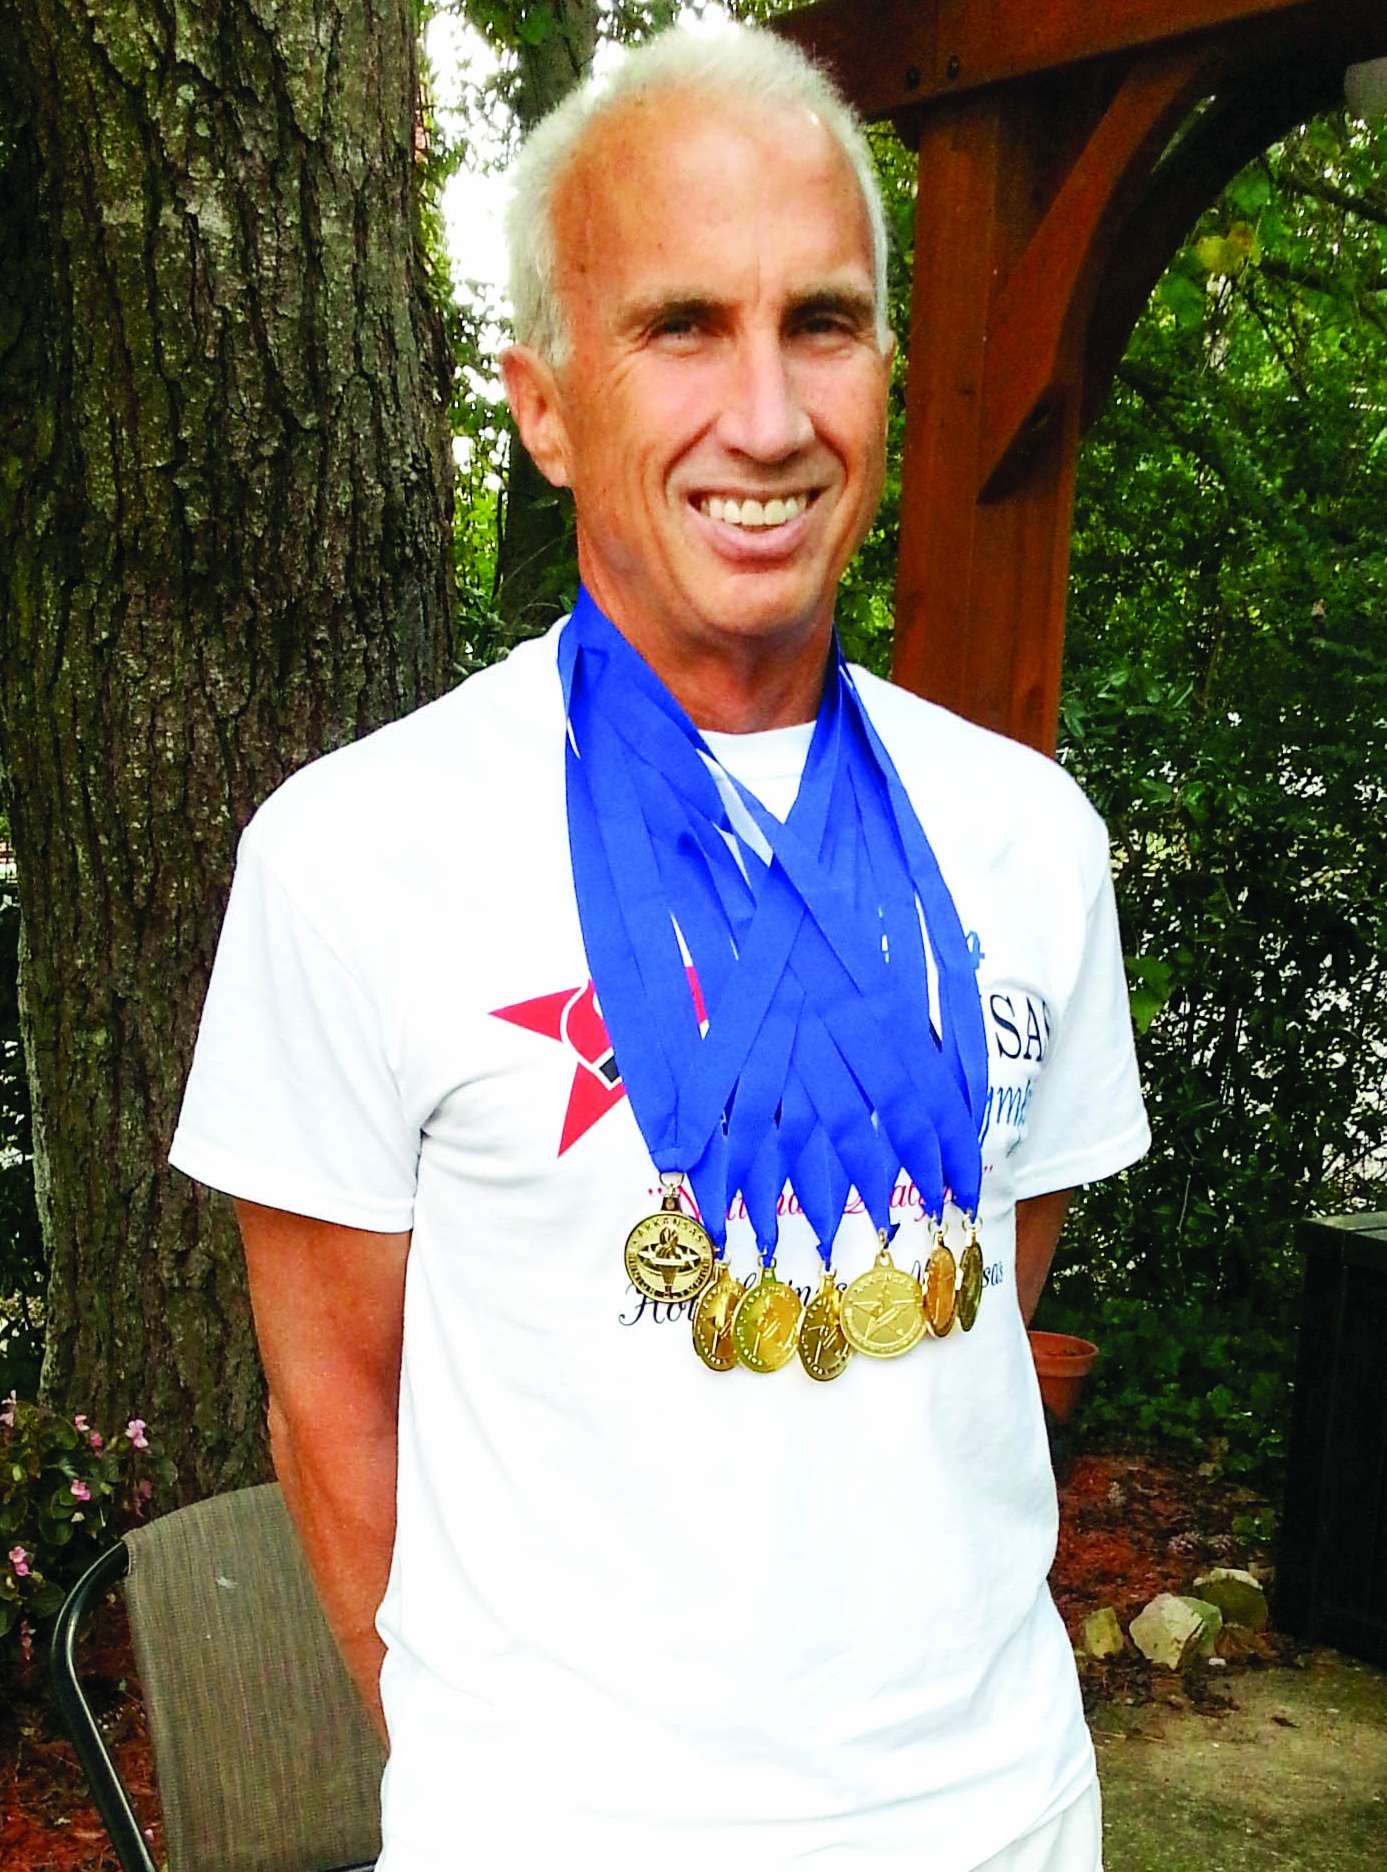 In 2014, Lee went to the Arkansas Senior Olympic Games and received five swimming gold medals and two cycling gold medals which qualified him for the Senior Nationals which were held in Minnesota in 2015.